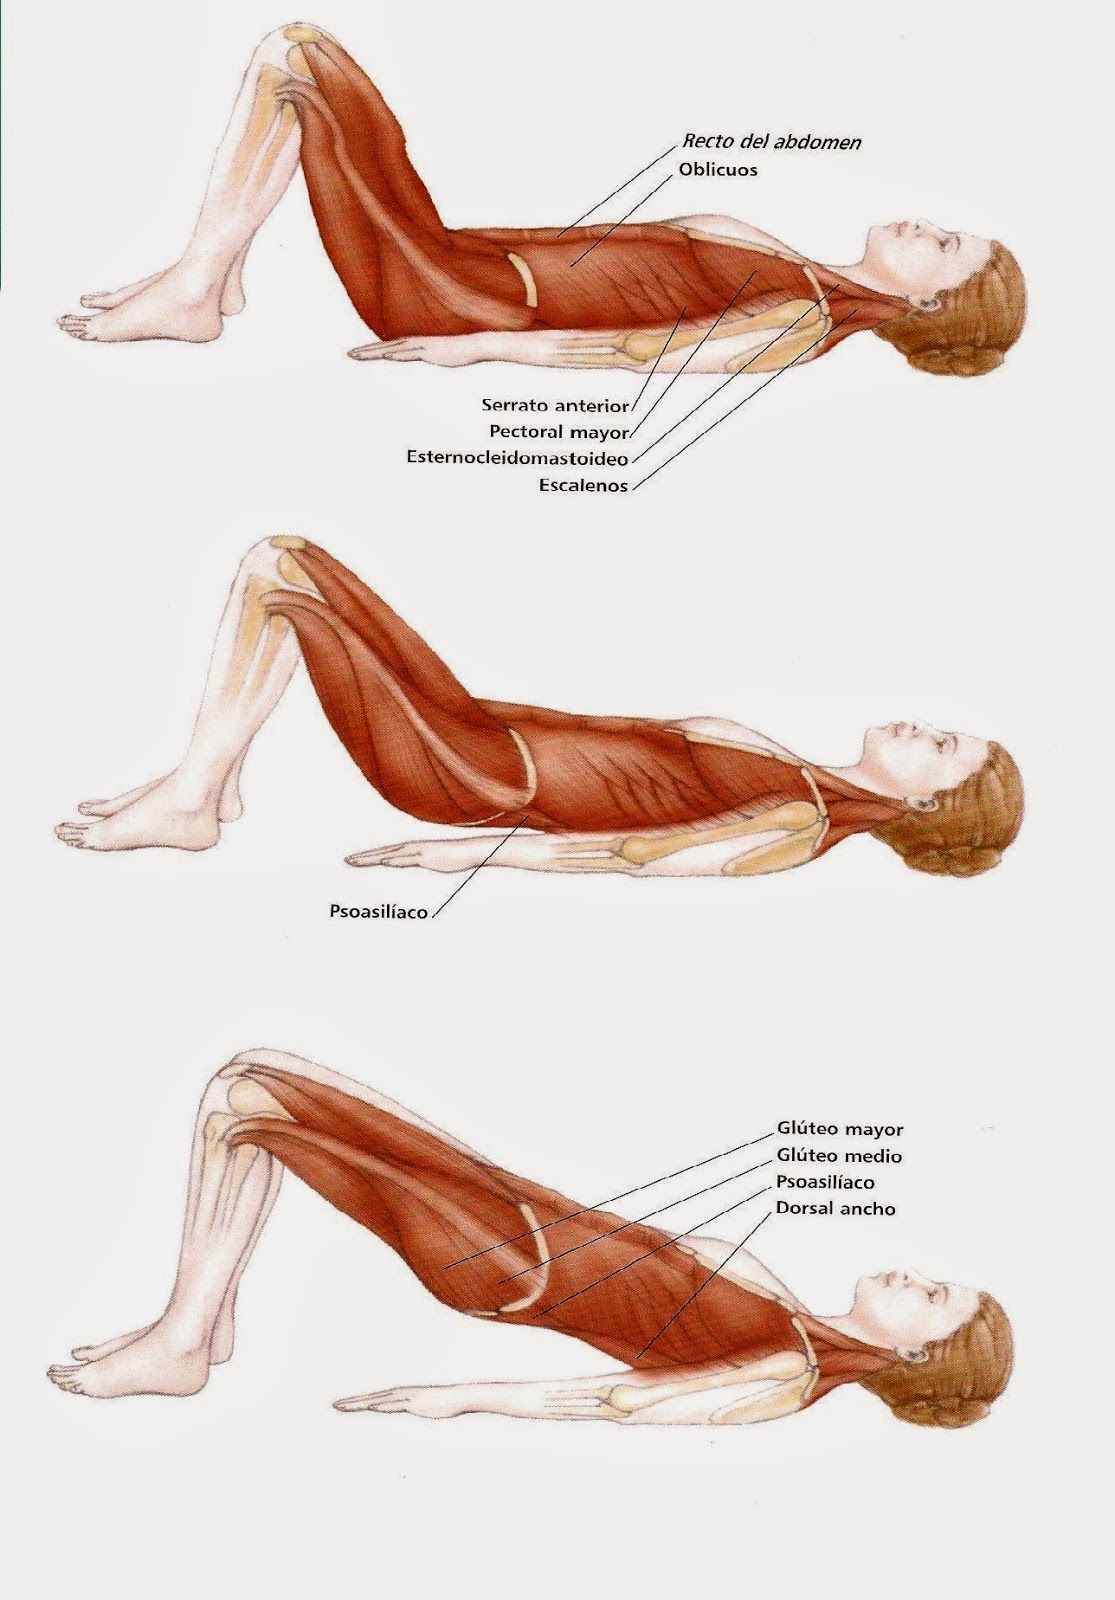 pelvic curl - Google Search | Pilates | Pinterest | Google, Yoga and ...